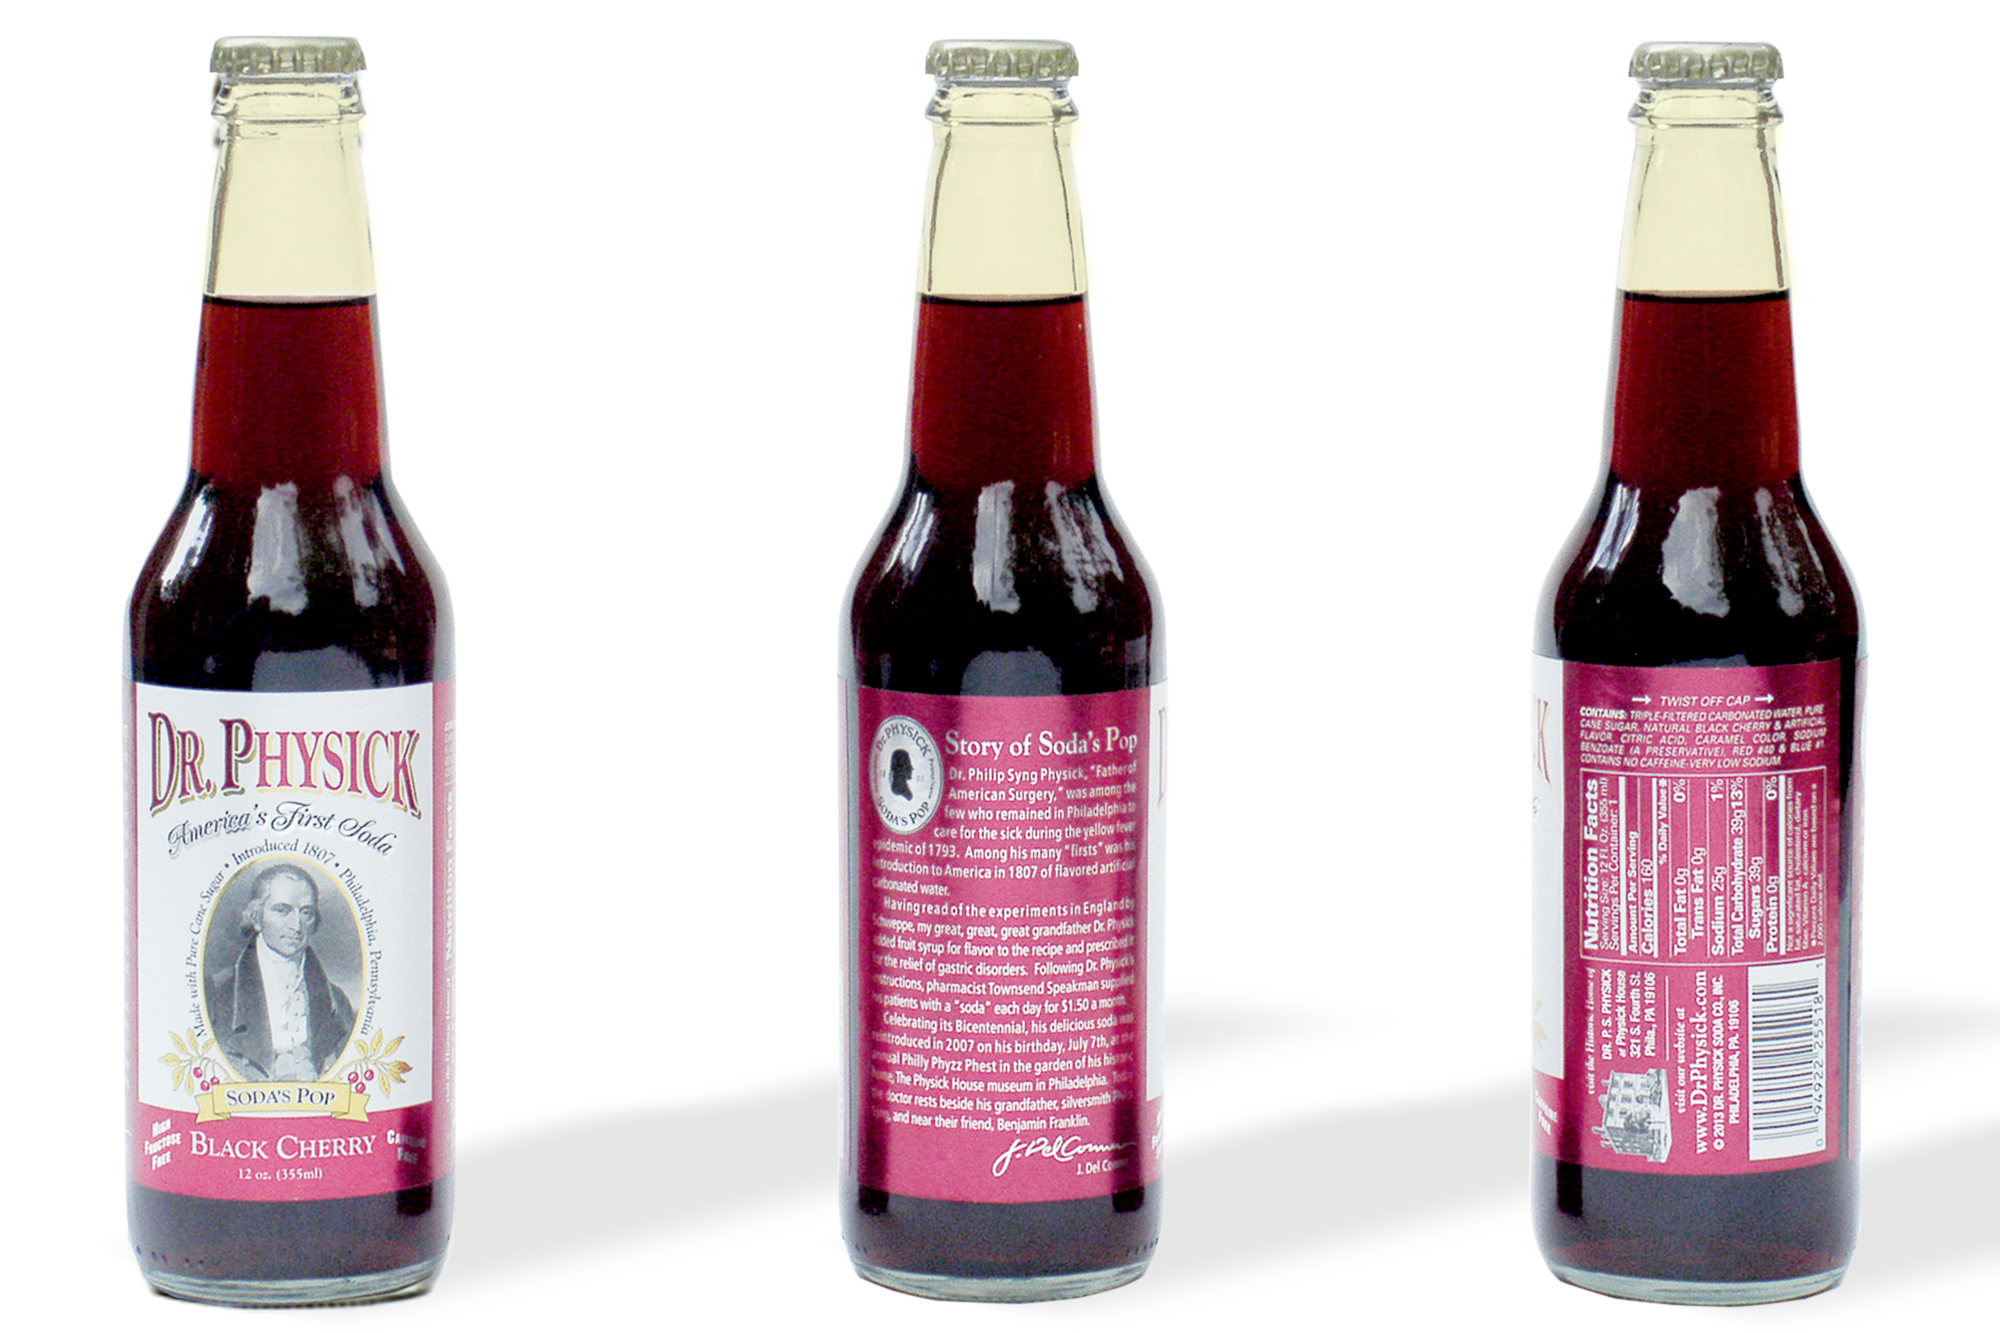 Three views of Dr. Physick soda